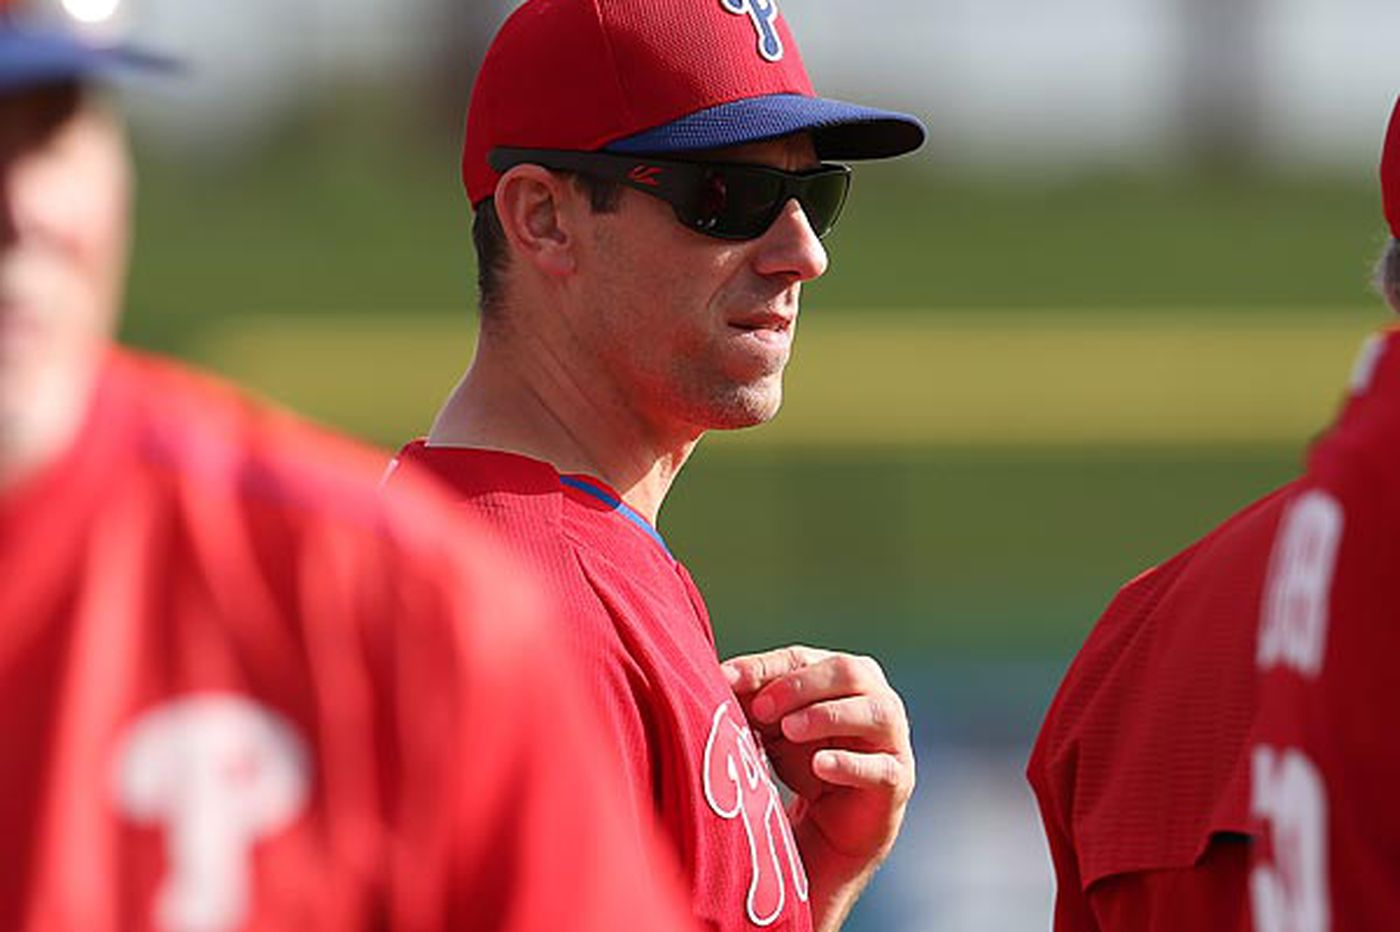 Phillies' Lee wants to proceed slowly, not eyeing surgery yet